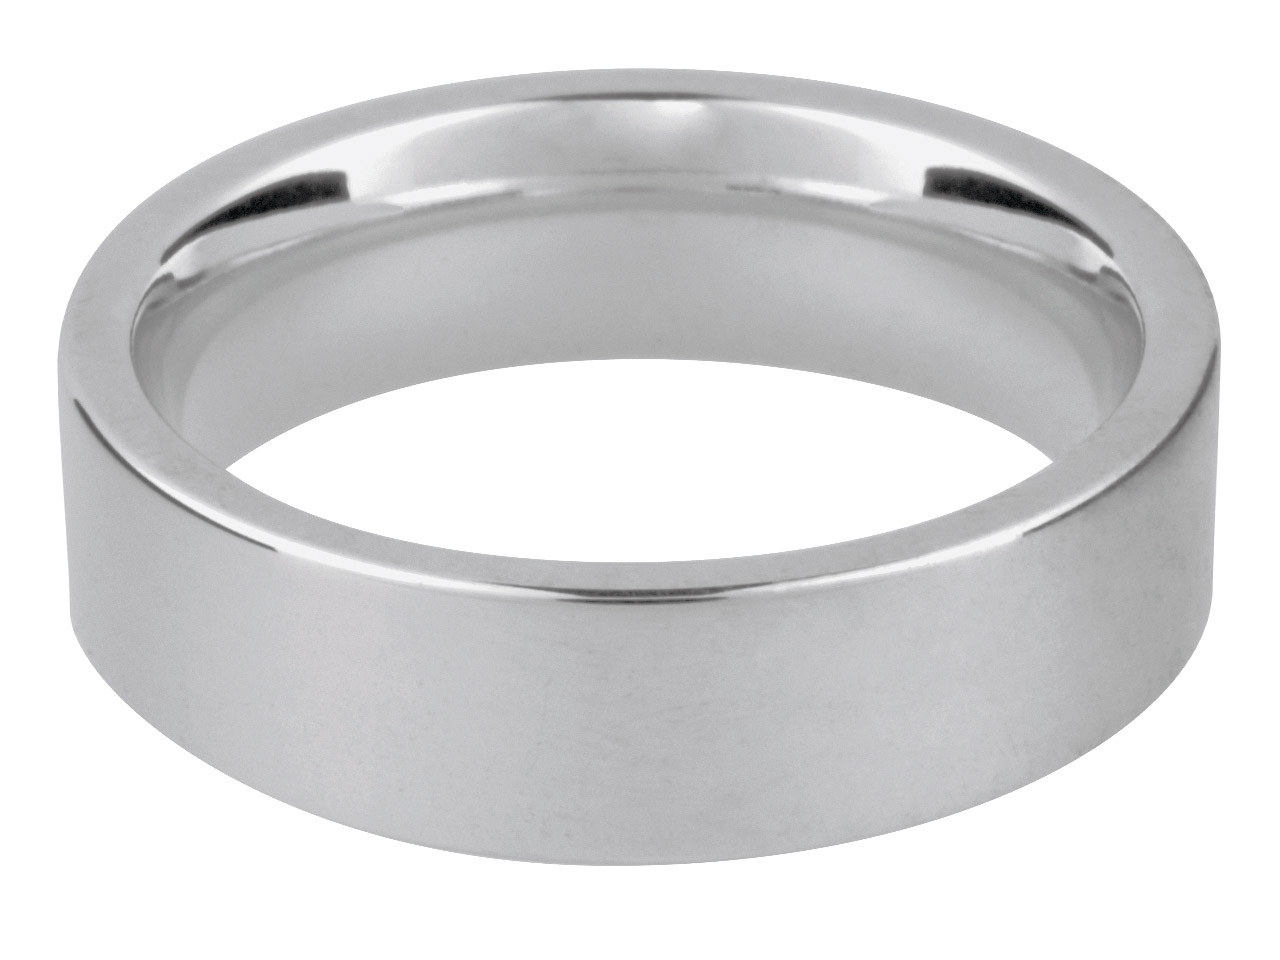 18ct White Easy Fit Wedding Ring   6.0mm Z 13.4gms Heavy Weight       Hallmarked Wall Thickness 2.04mm